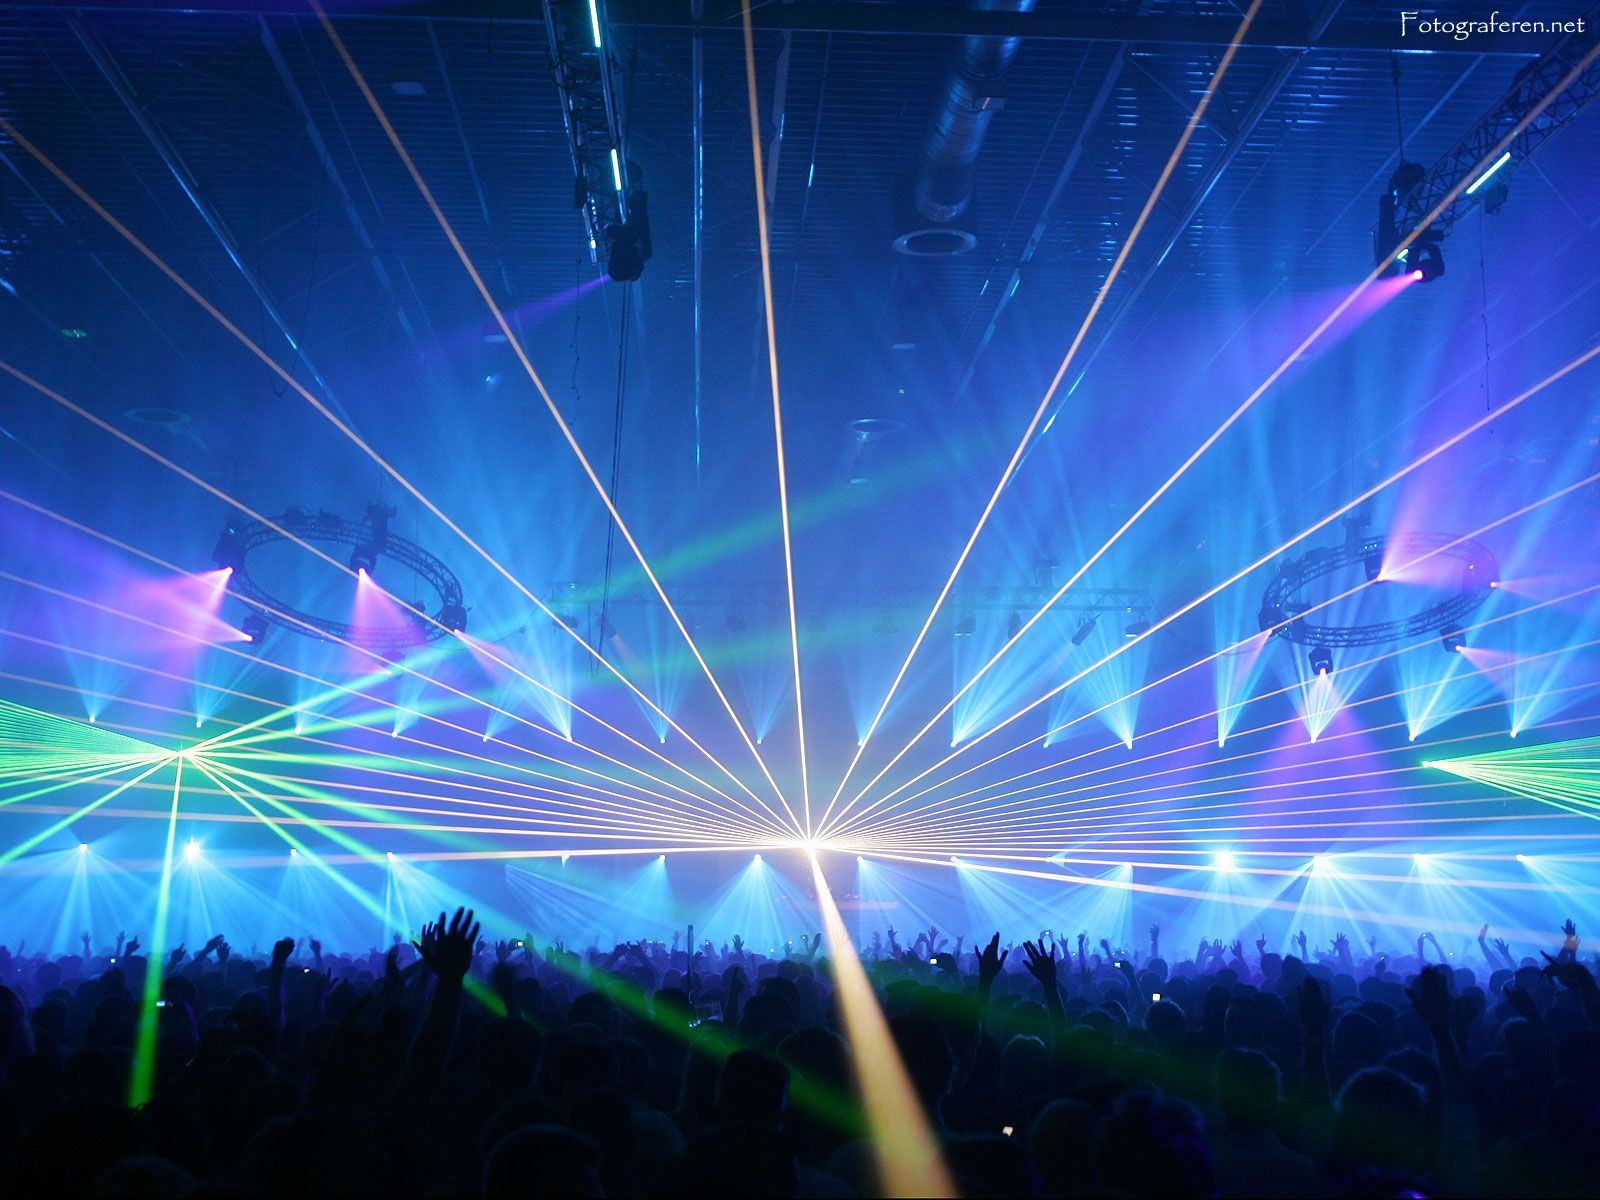 wallpaper Video Production Services. Electronic dance